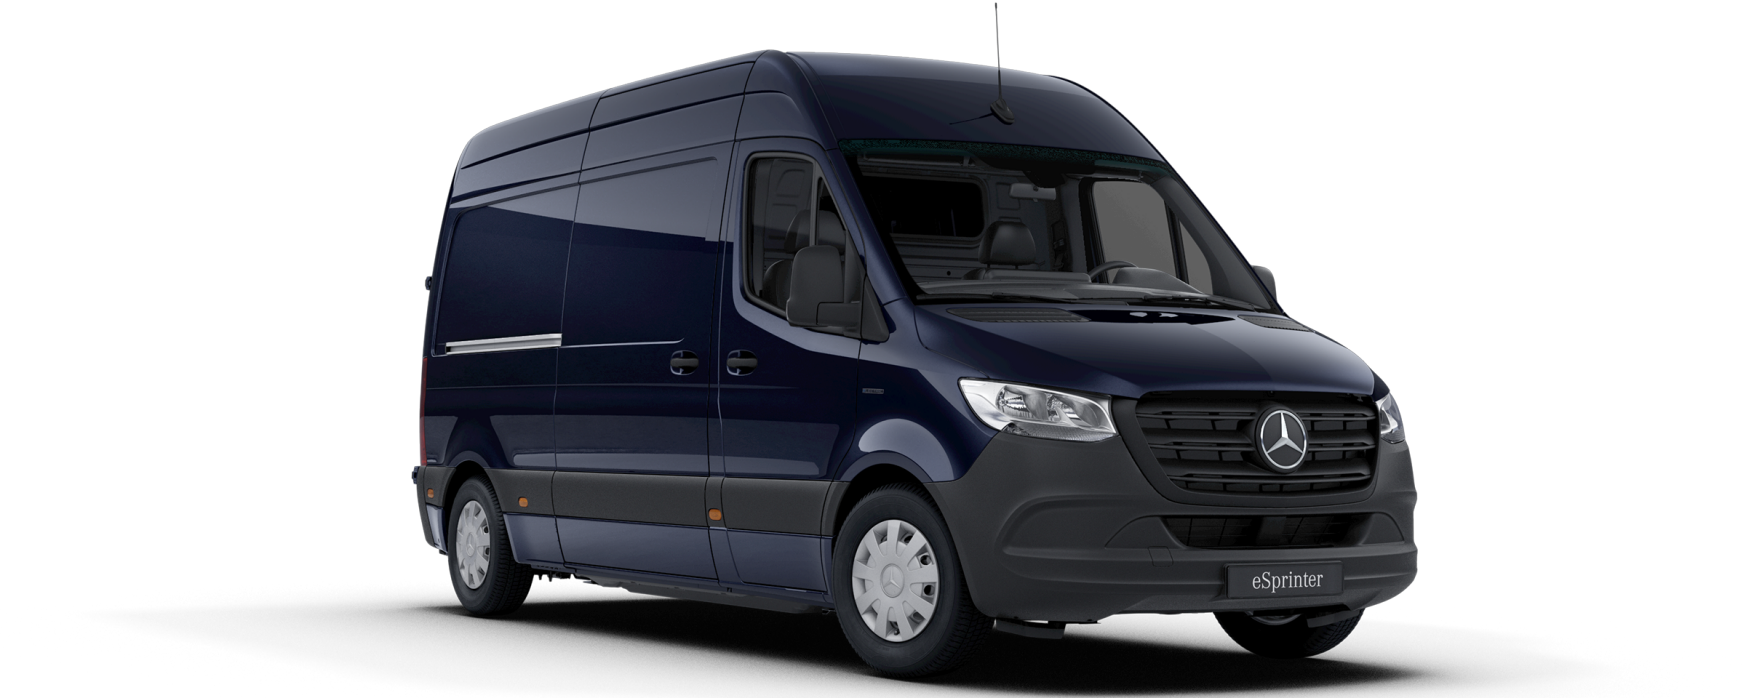 eSprinter kassevogn, cavansitblå metallic